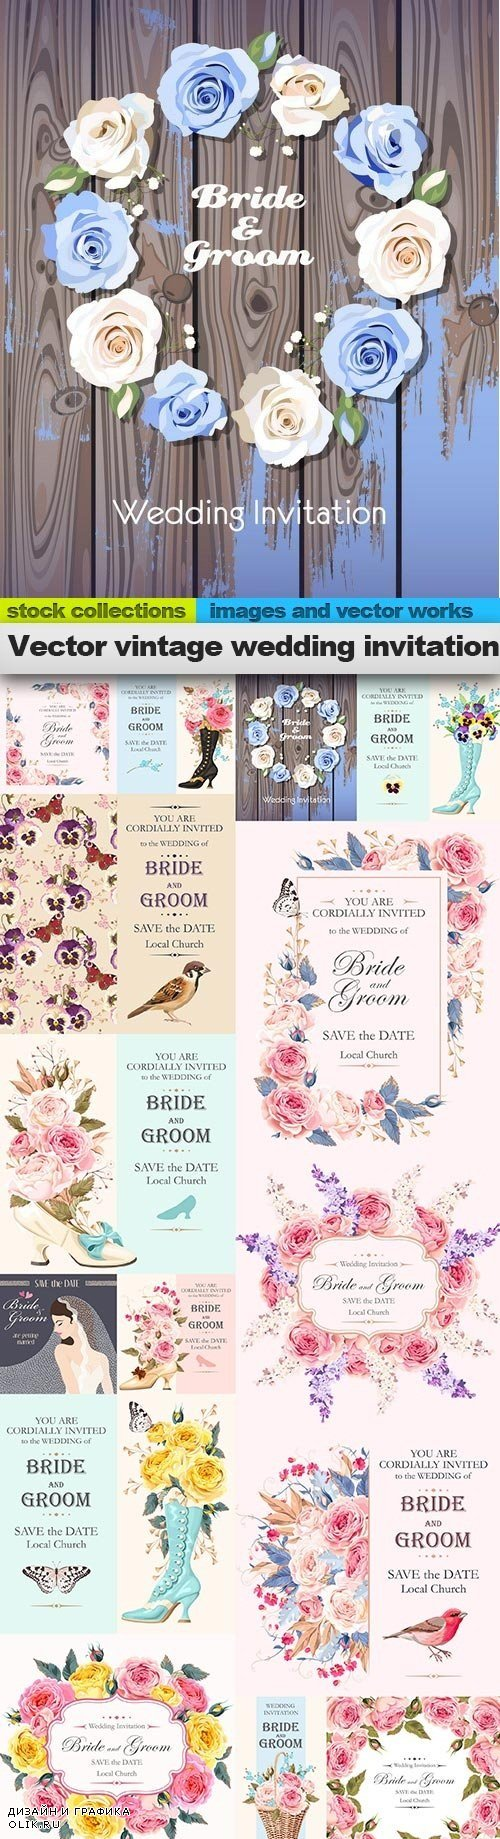 Vector vintage wedding invitation, 15 x EPS